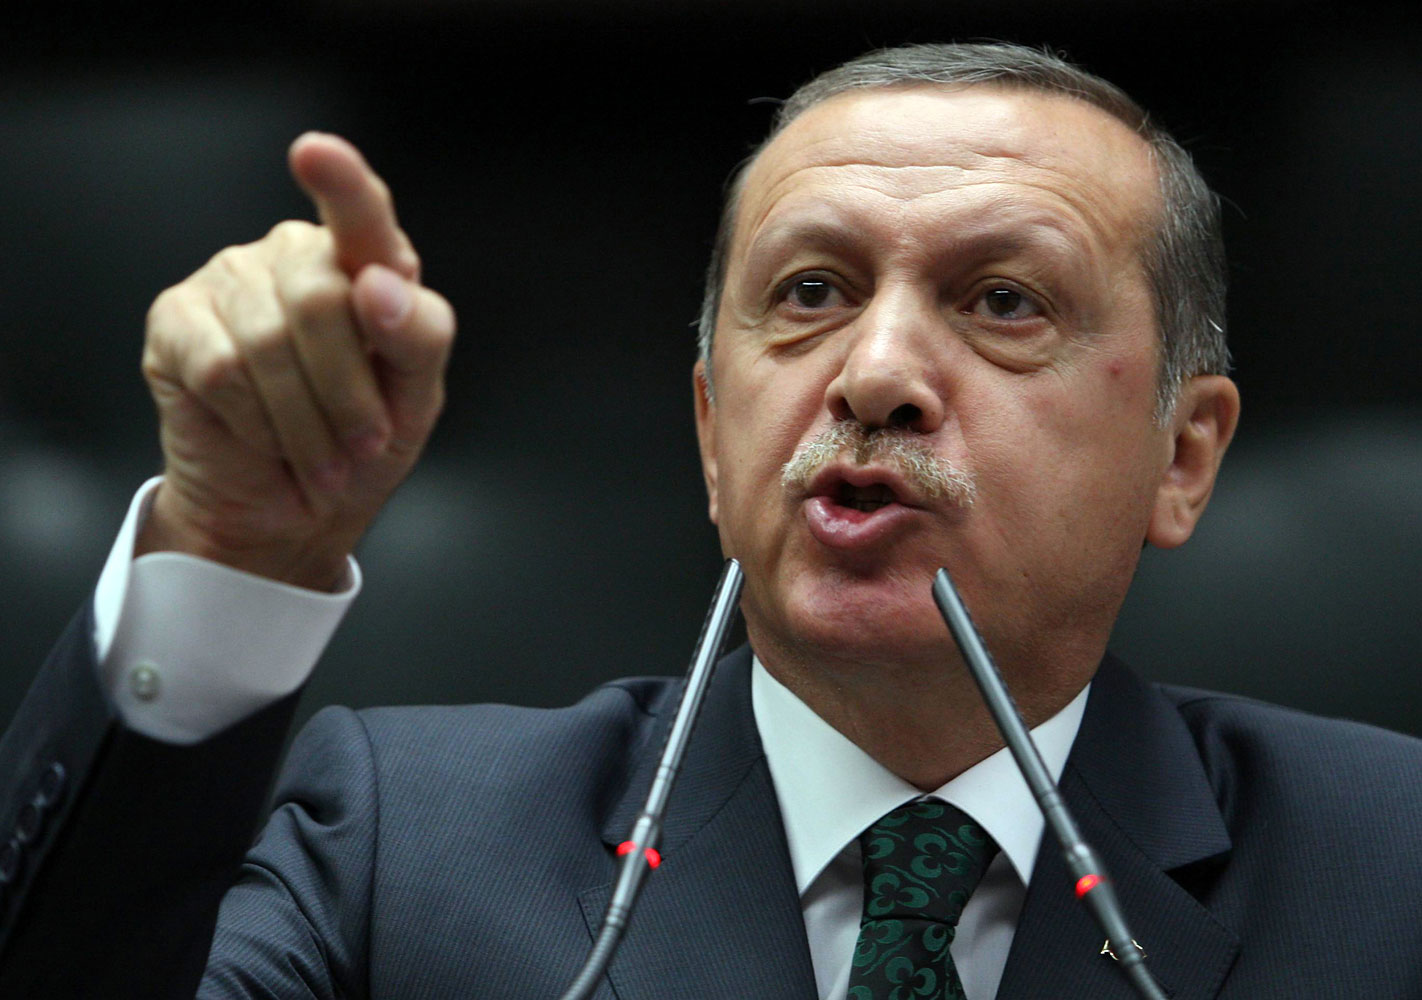 Turkish Prime Minister Tayyip Erdogan is applauded by members of parliament from his ruling Justice and Development Party (AKP) during a meeting at the Turkish parliament in Ankara June 25, 2013.